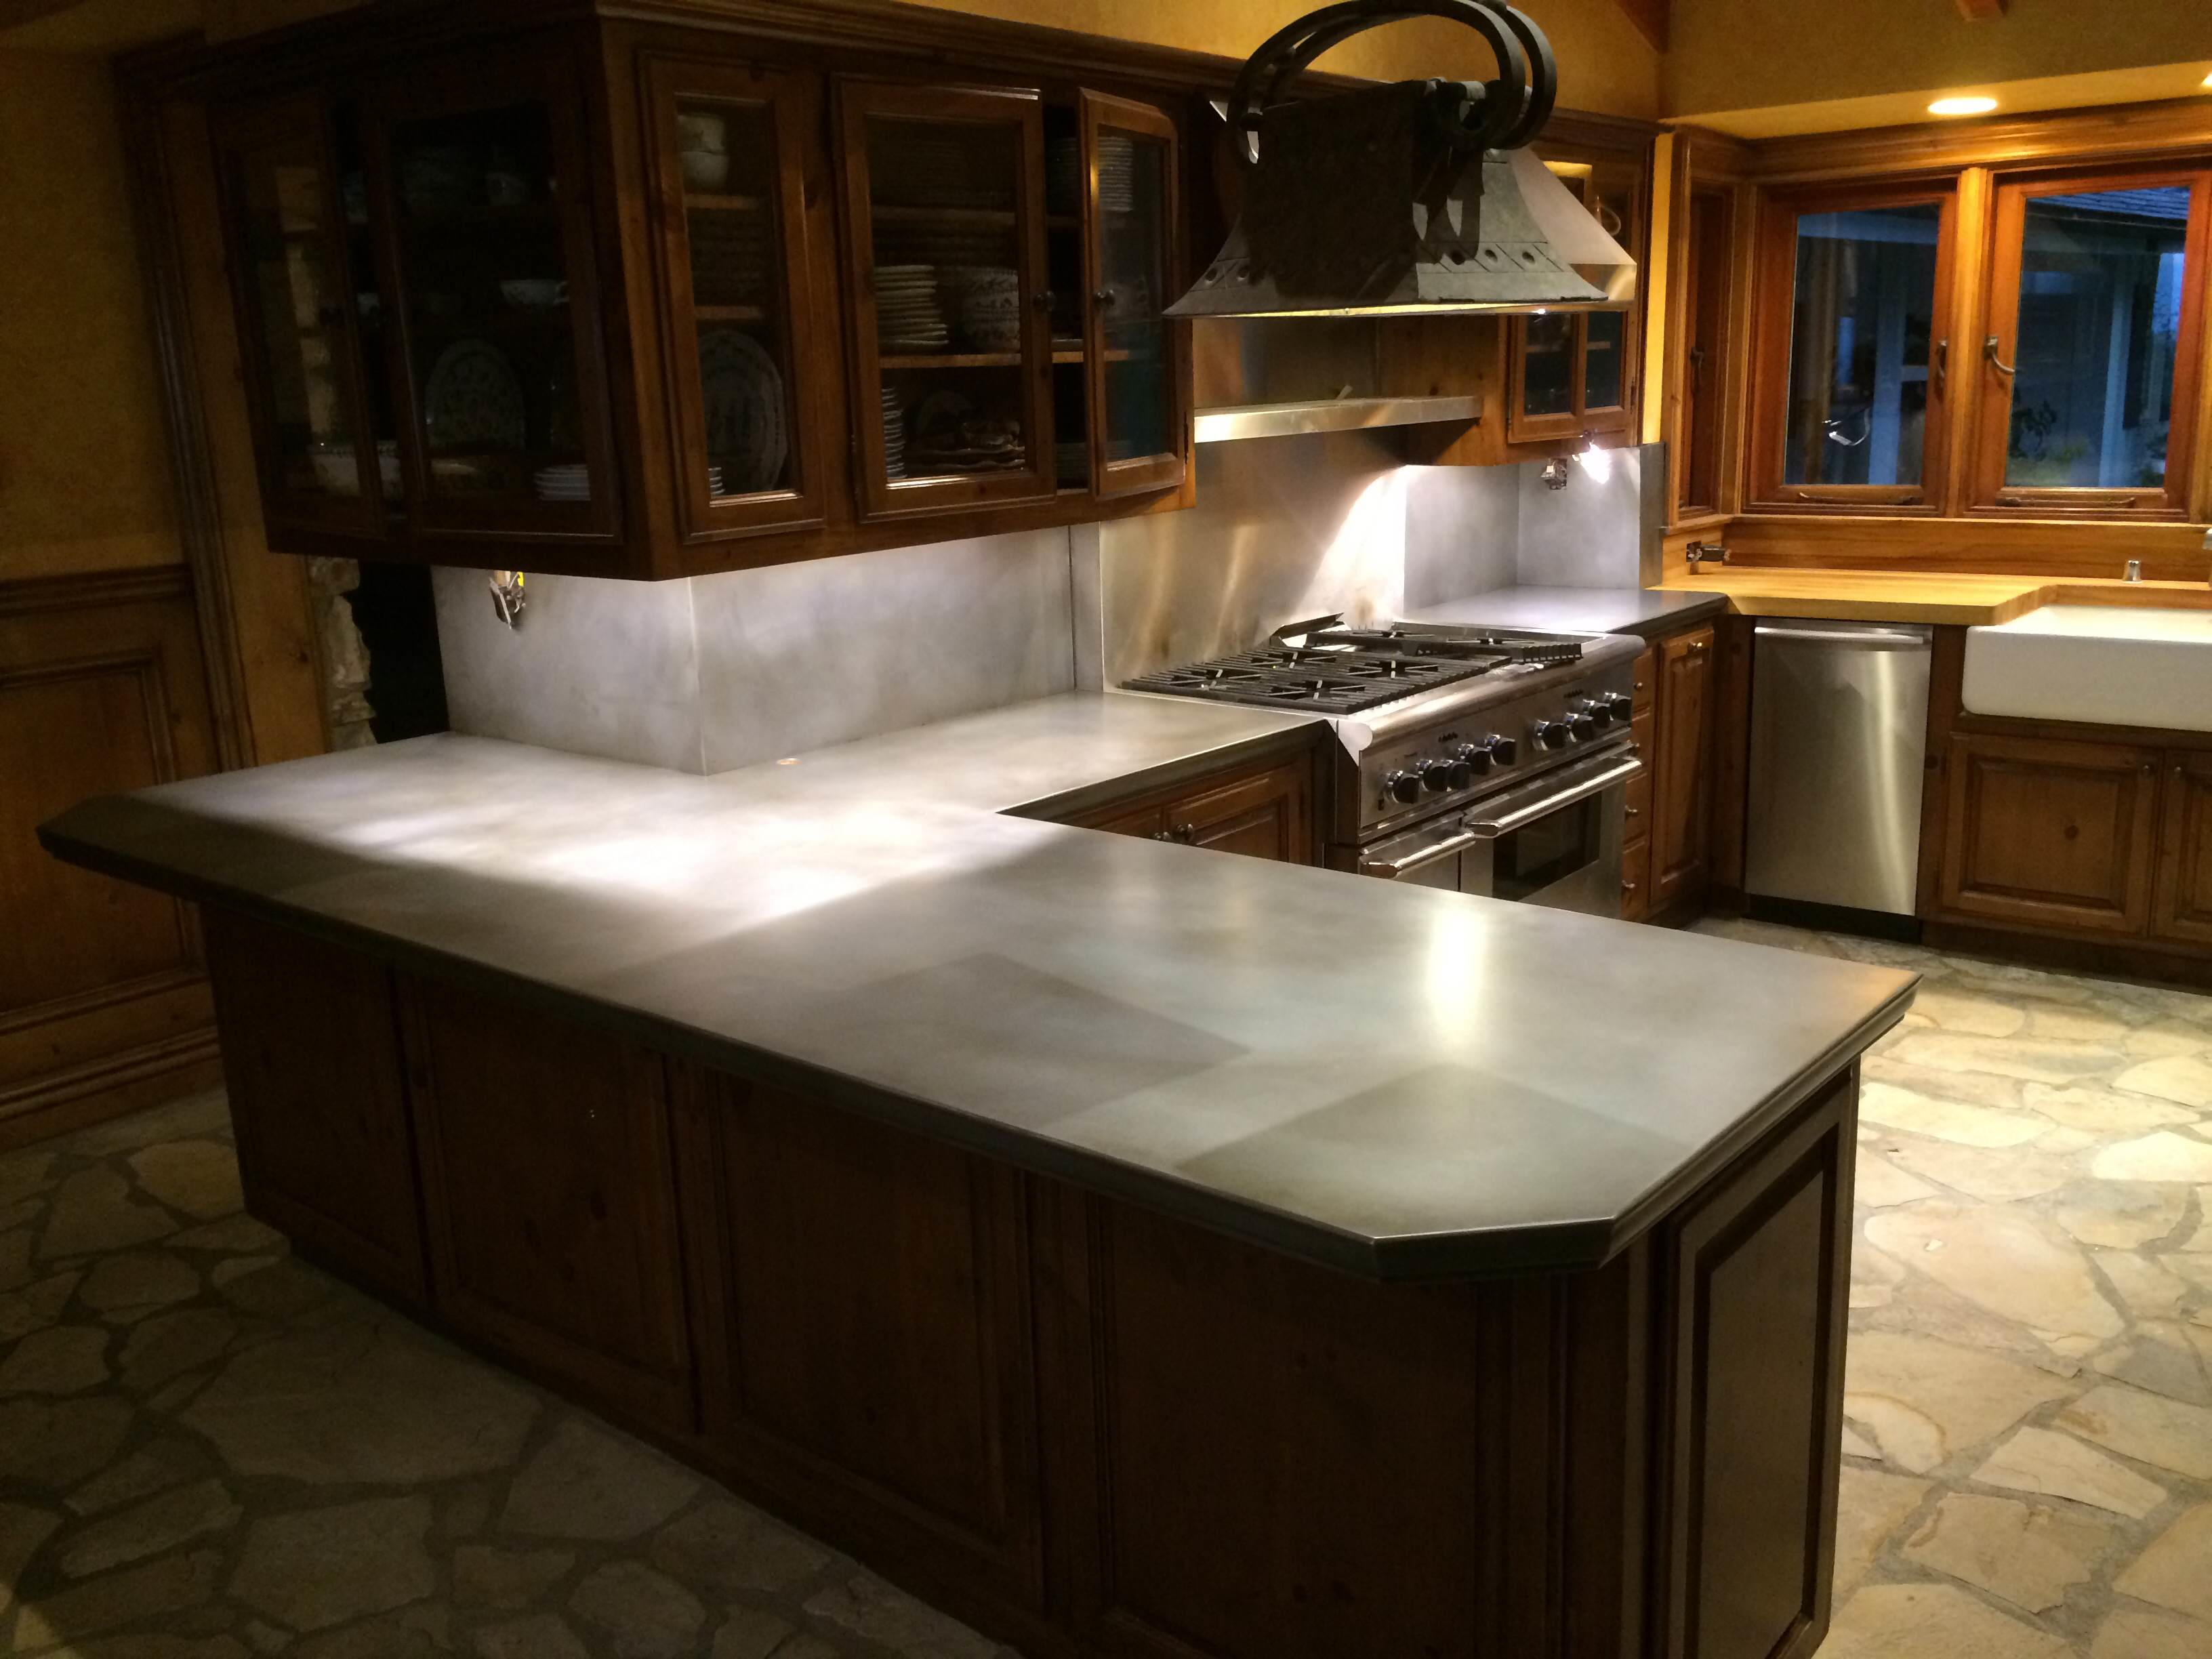 - Zinc Countertop And Backsplash #RHEINZINK Bright Rolled Zinc